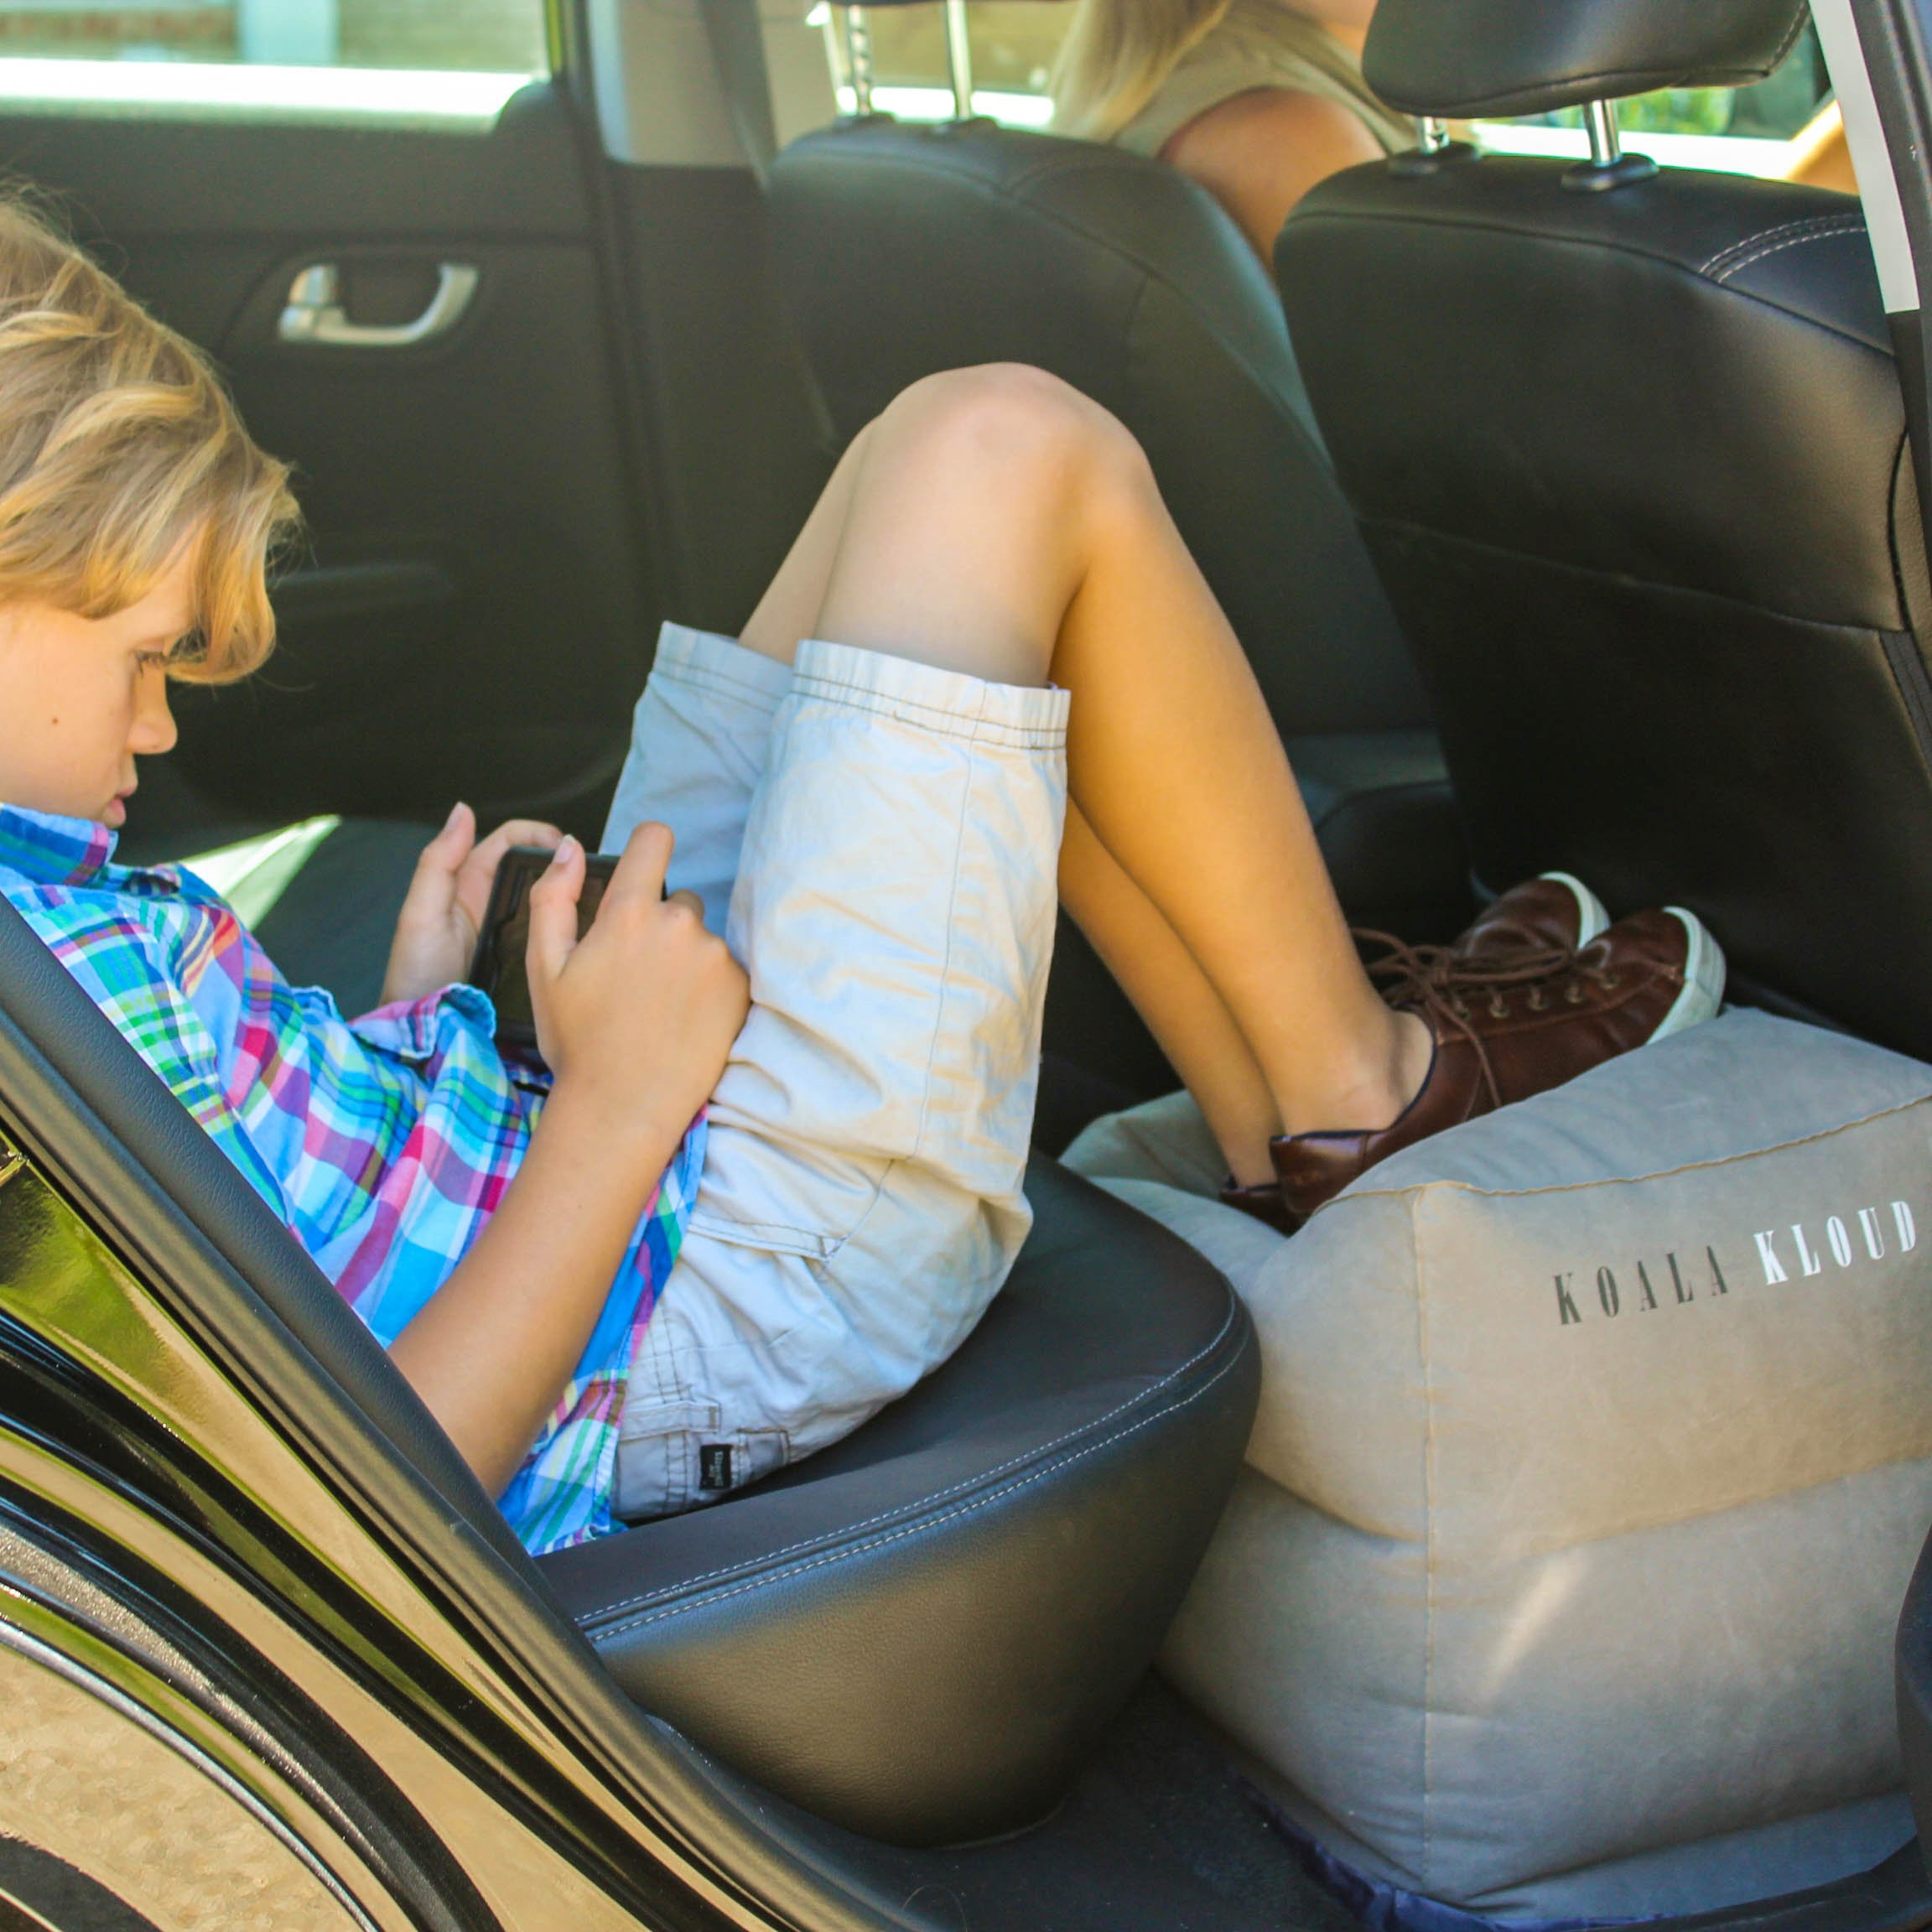 Inflatable Foot Rest Travel Pillow - For Toddlers & Kids, Best Accessory and Gadget for Traveling By Airplane or Car, Use As A Footrest Stool Under Office Desk, Fly With Your Legs Up - By Koala Kloud by Koala Kloud (Image #3)